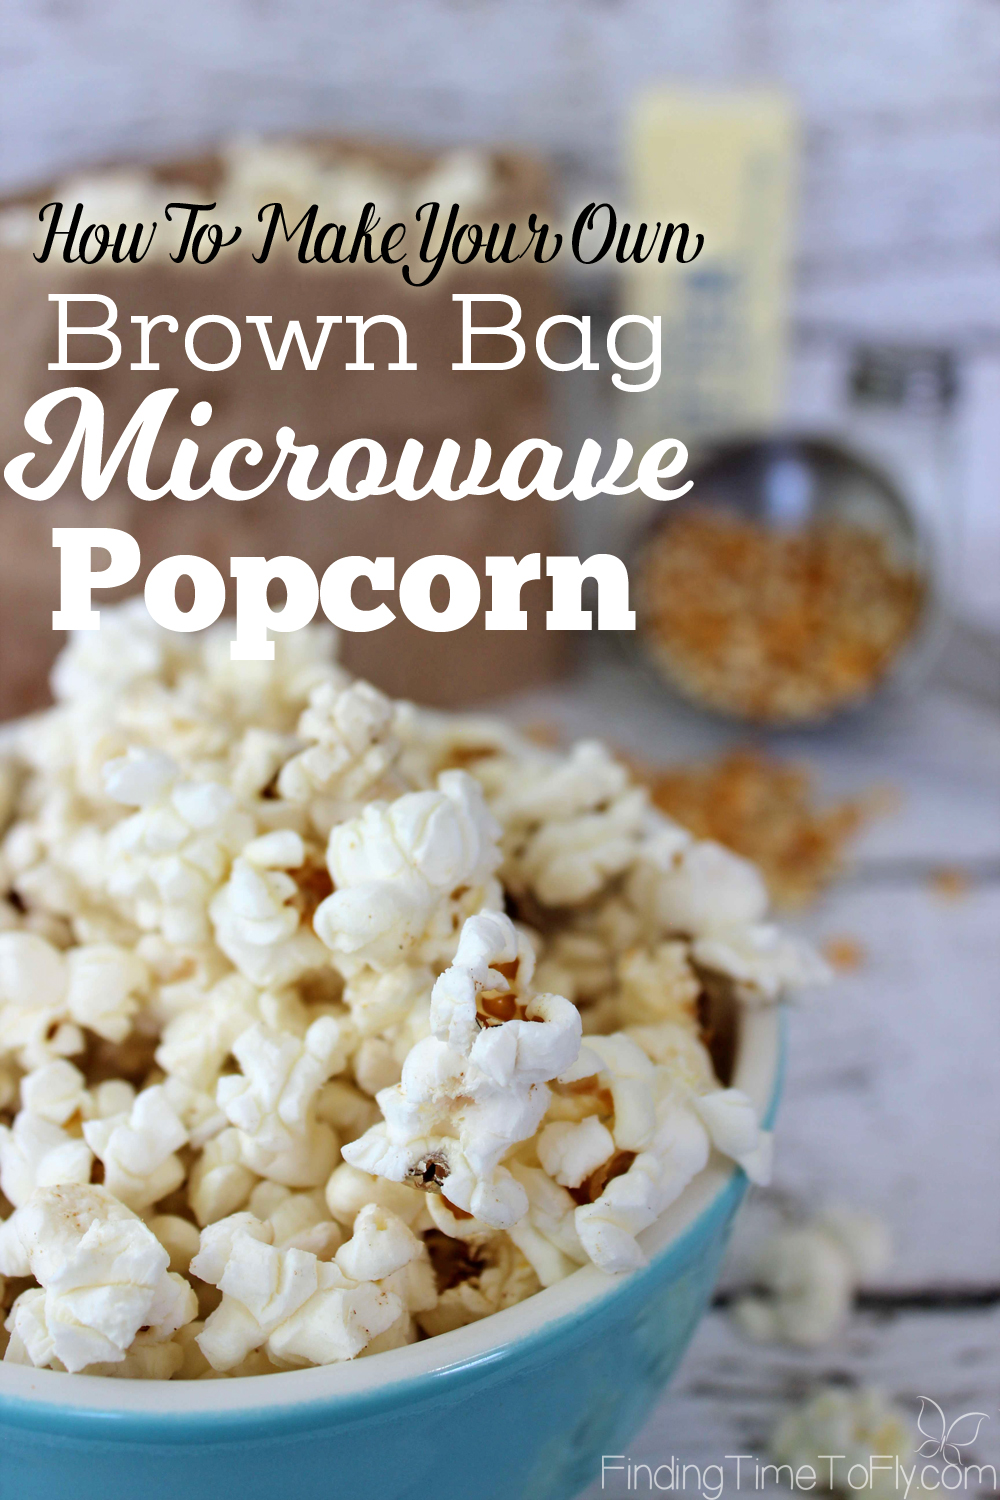 This brown bag microwave popcorn is so simple! I like being able to control what goes in there. I think the kids will have fun with this snack, too!